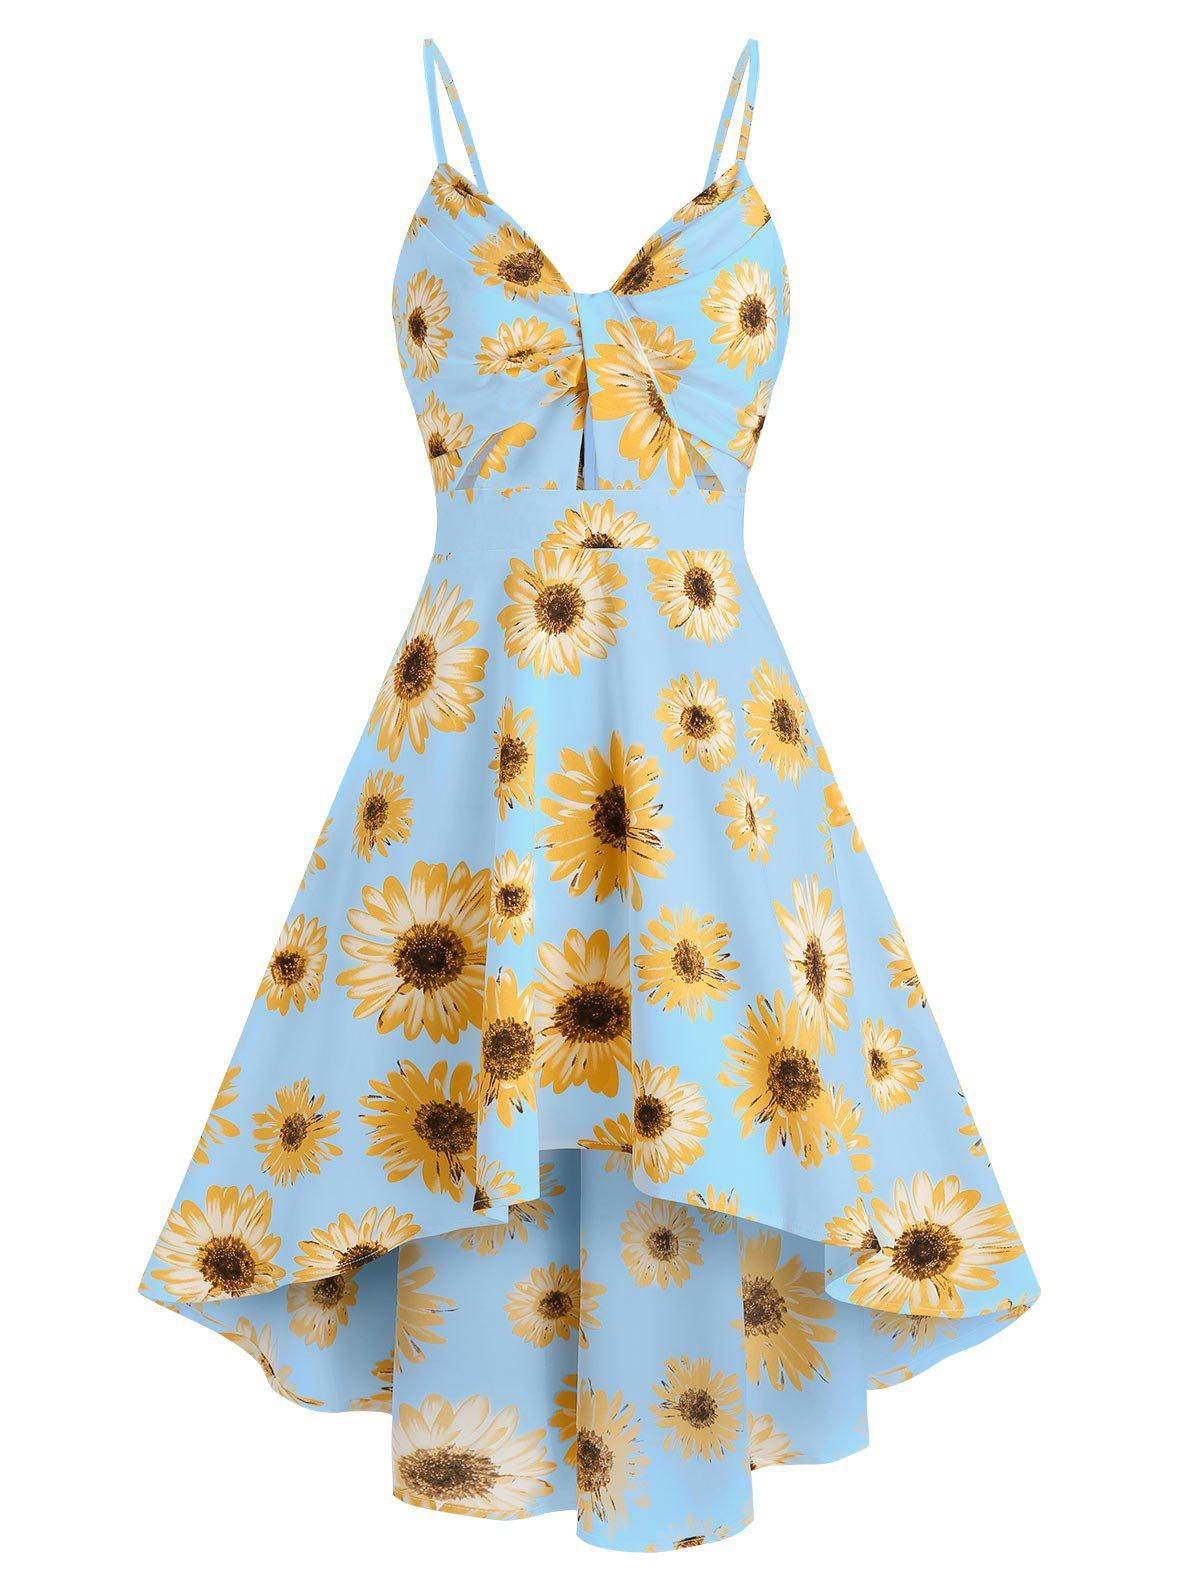 Spaghetti Strap Sunflower Print High Low Dress фото